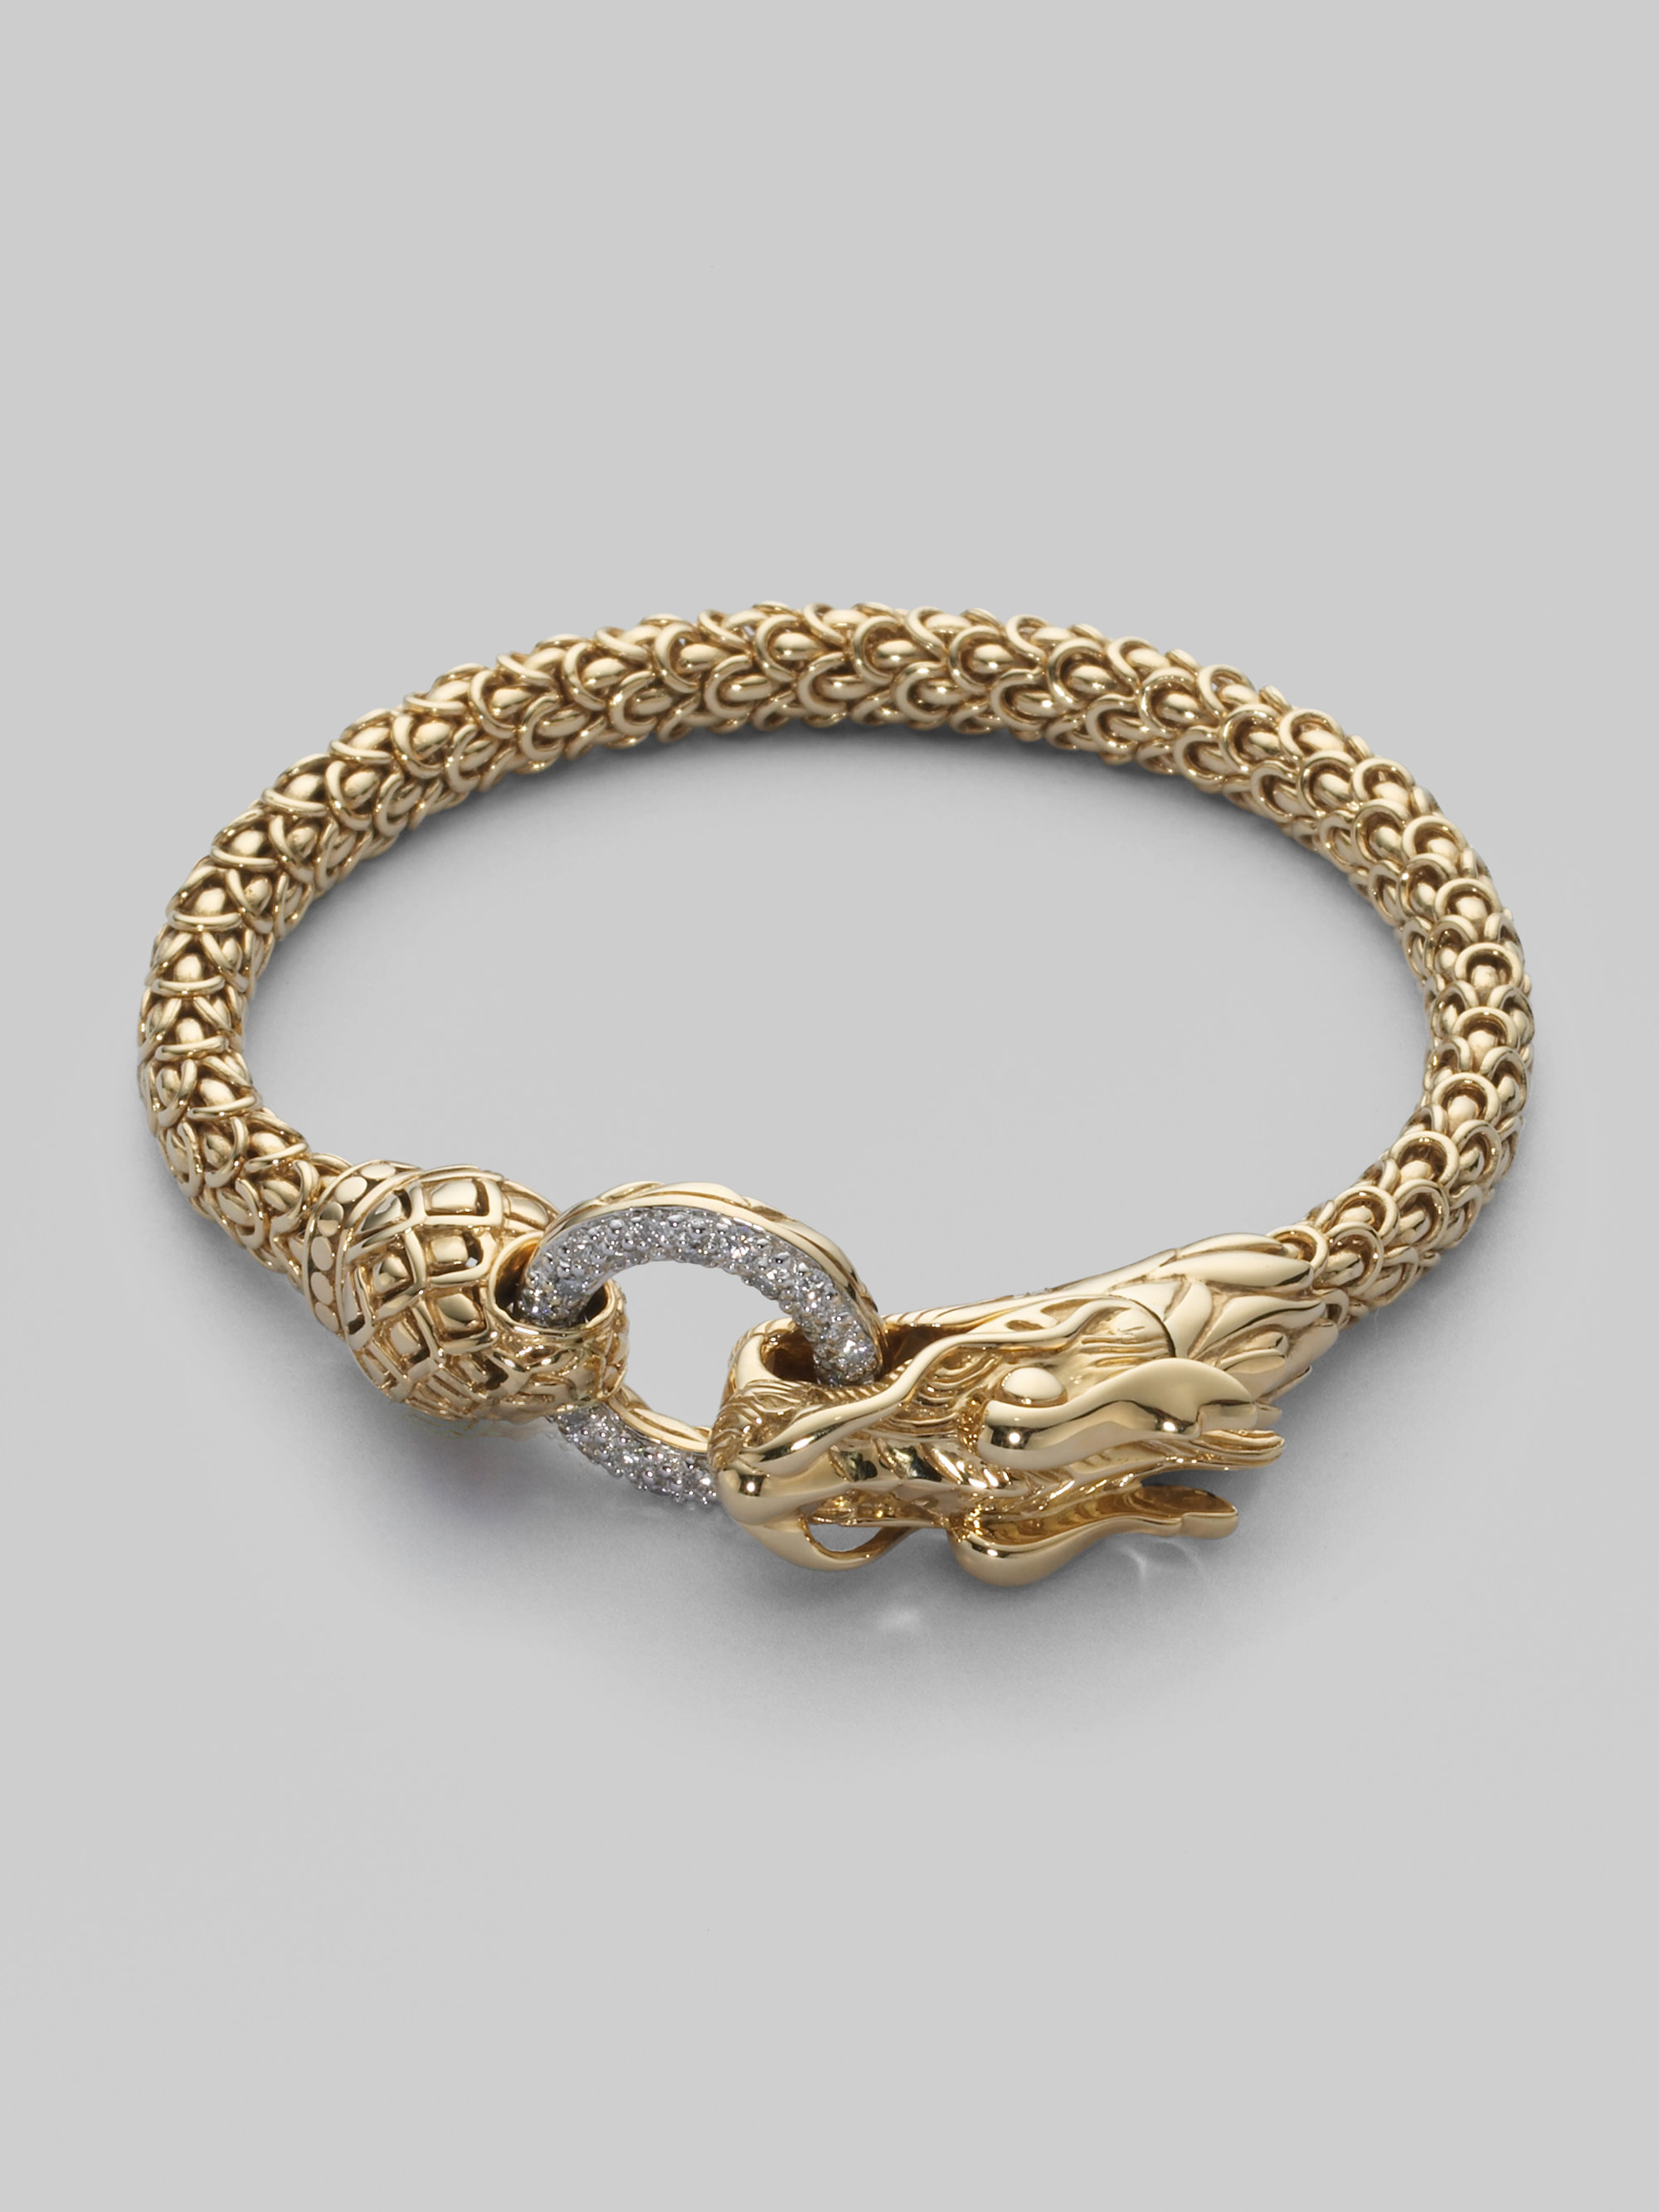 Lyst John Hardy Diamond 18k Gold Dragon Bracelet in Metallic